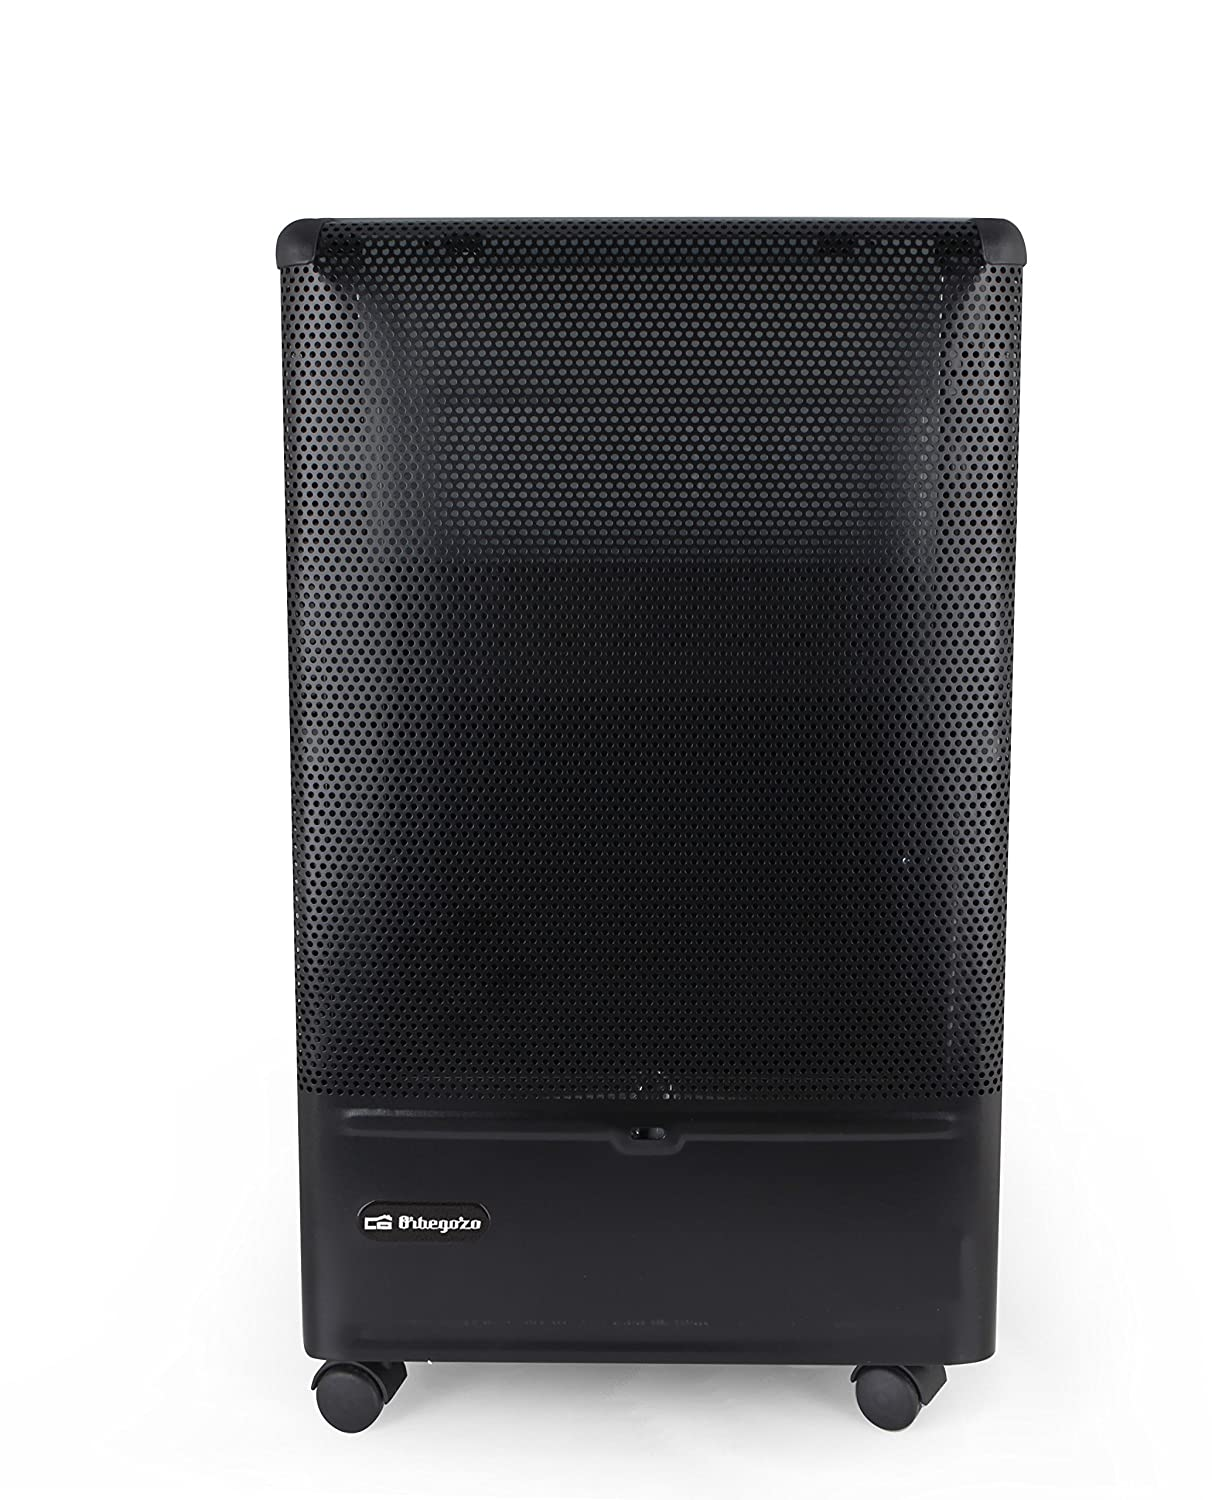 Amazon.com: Orbegozo H55 Gas heater, catalytic burner 3000 W ...